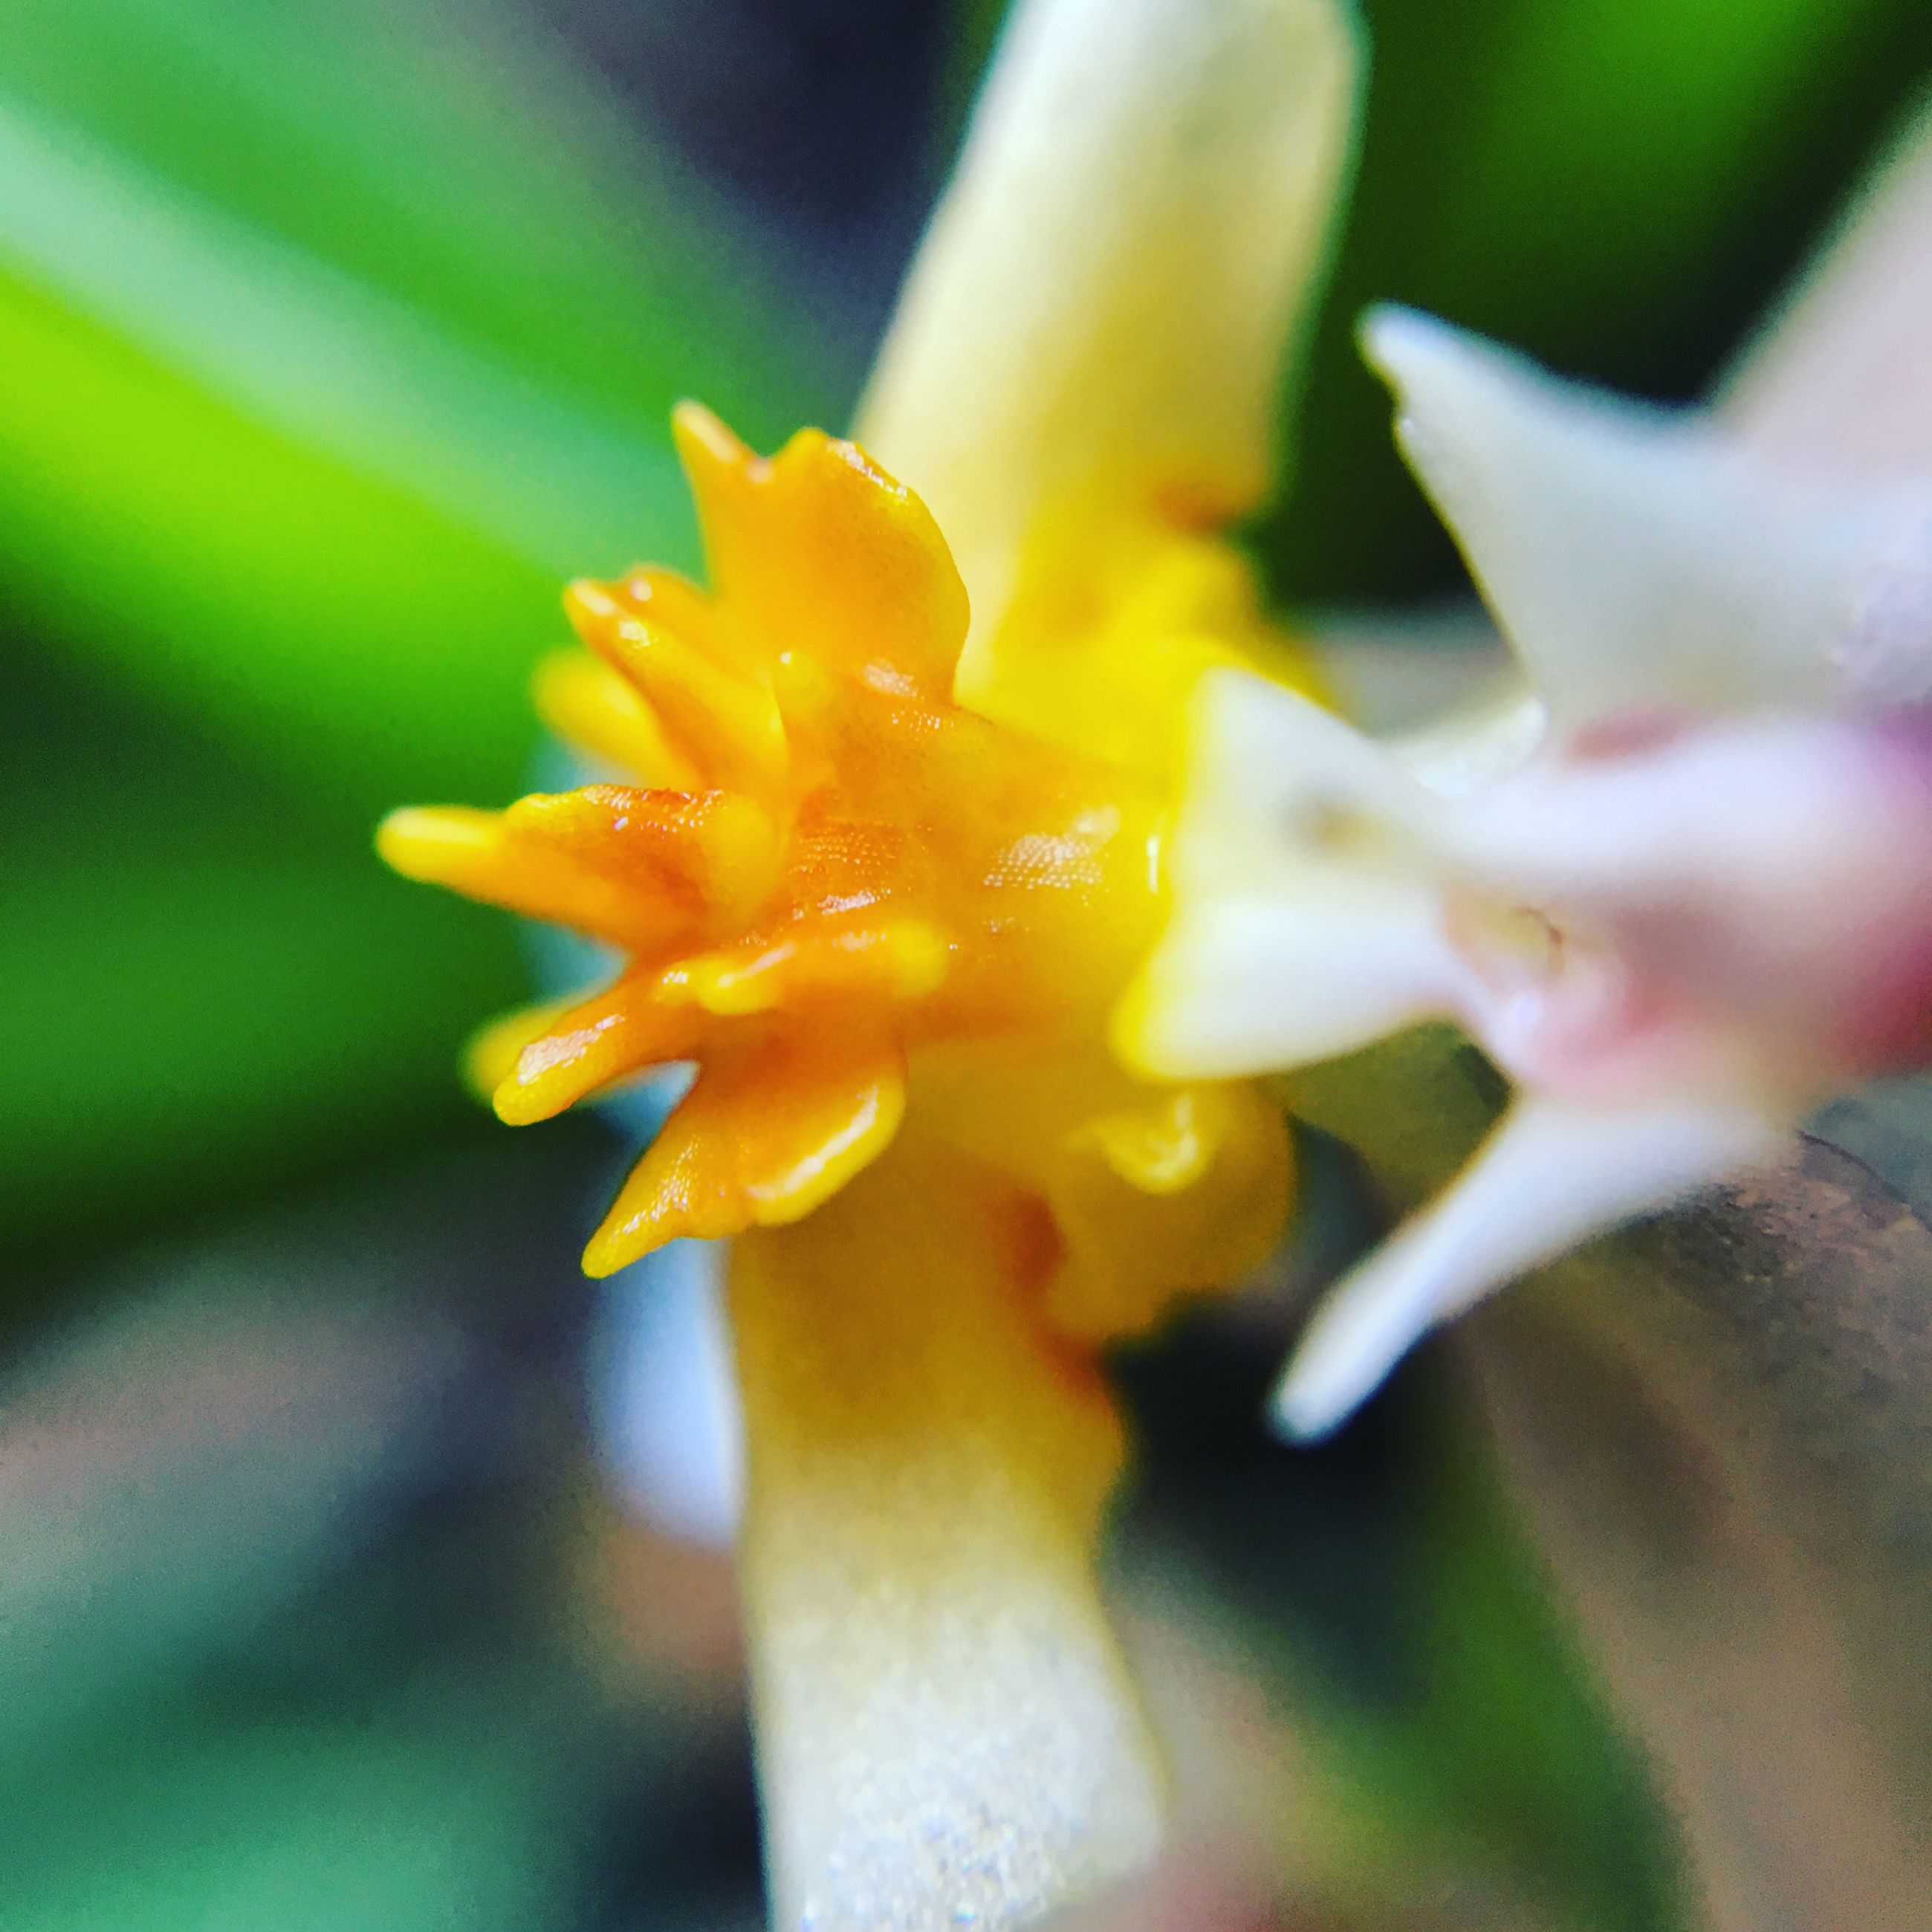 flower, petal, freshness, flower head, fragility, close-up, growth, focus on foreground, beauty in nature, single flower, blooming, nature, yellow, selective focus, pollen, plant, stamen, in bloom, blossom, park - man made space